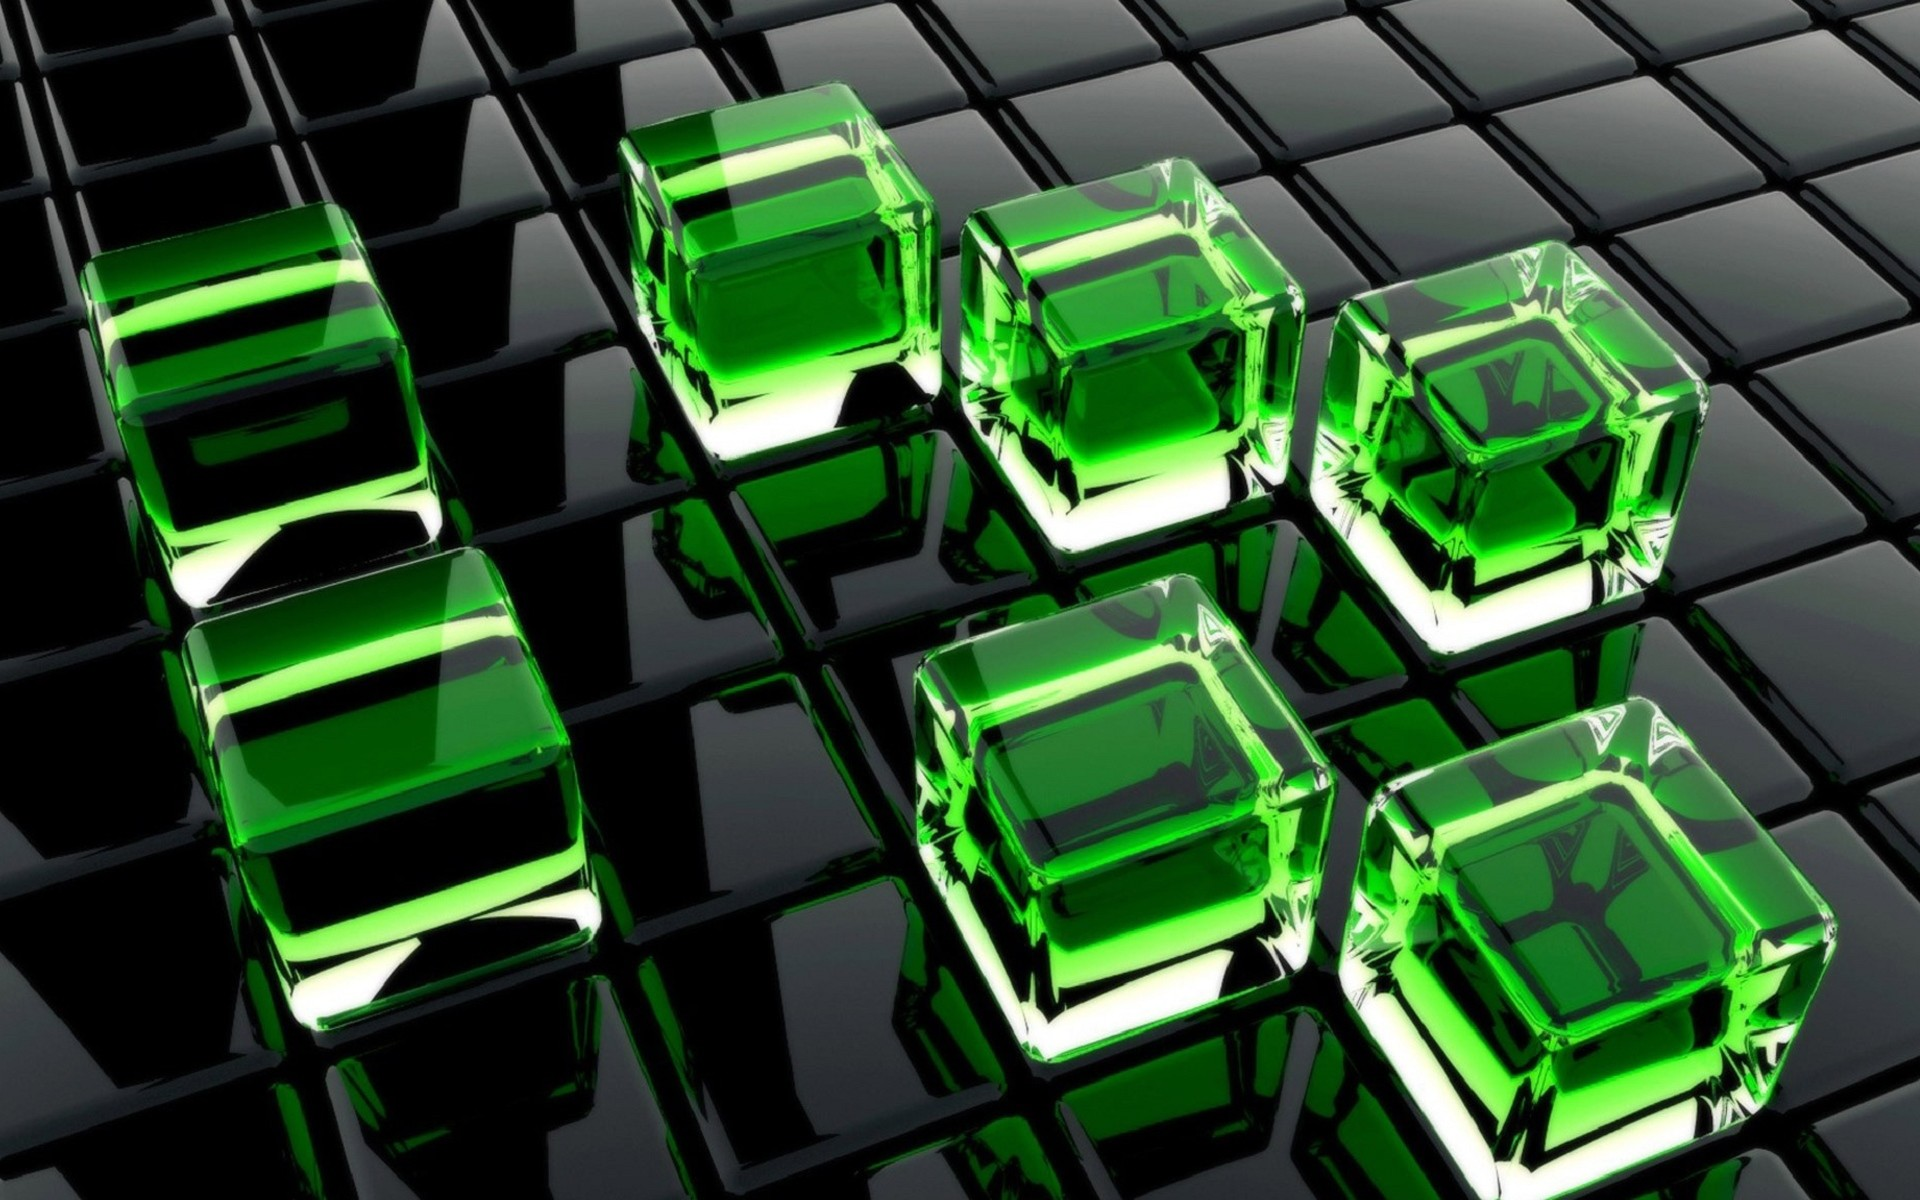 Green and Black Cube Wallpapers HD HD Wallpapers Full HD Wallpapers